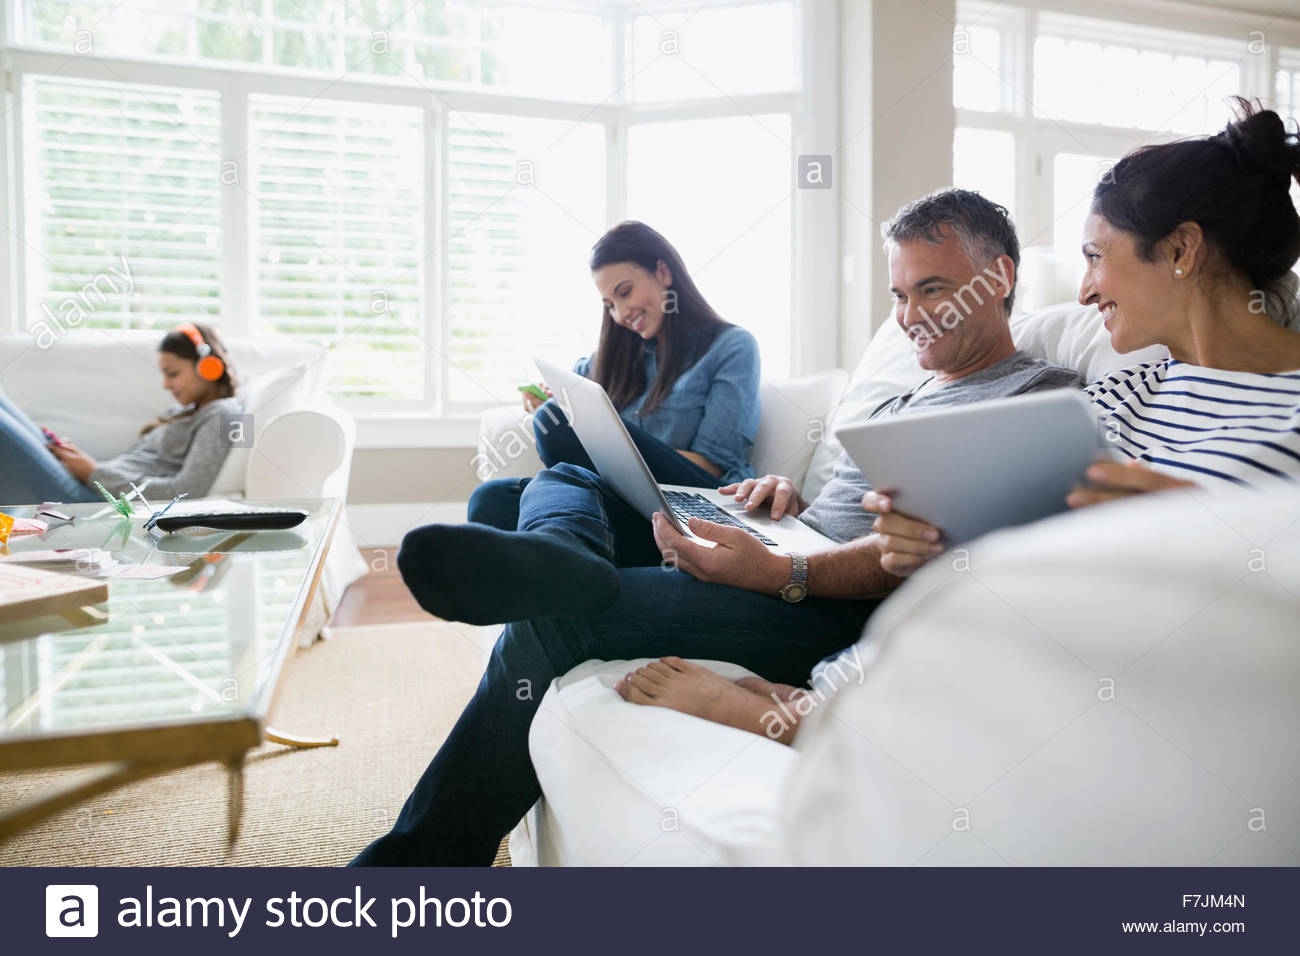 Family using wireless technology on living room sofa - Stock Image